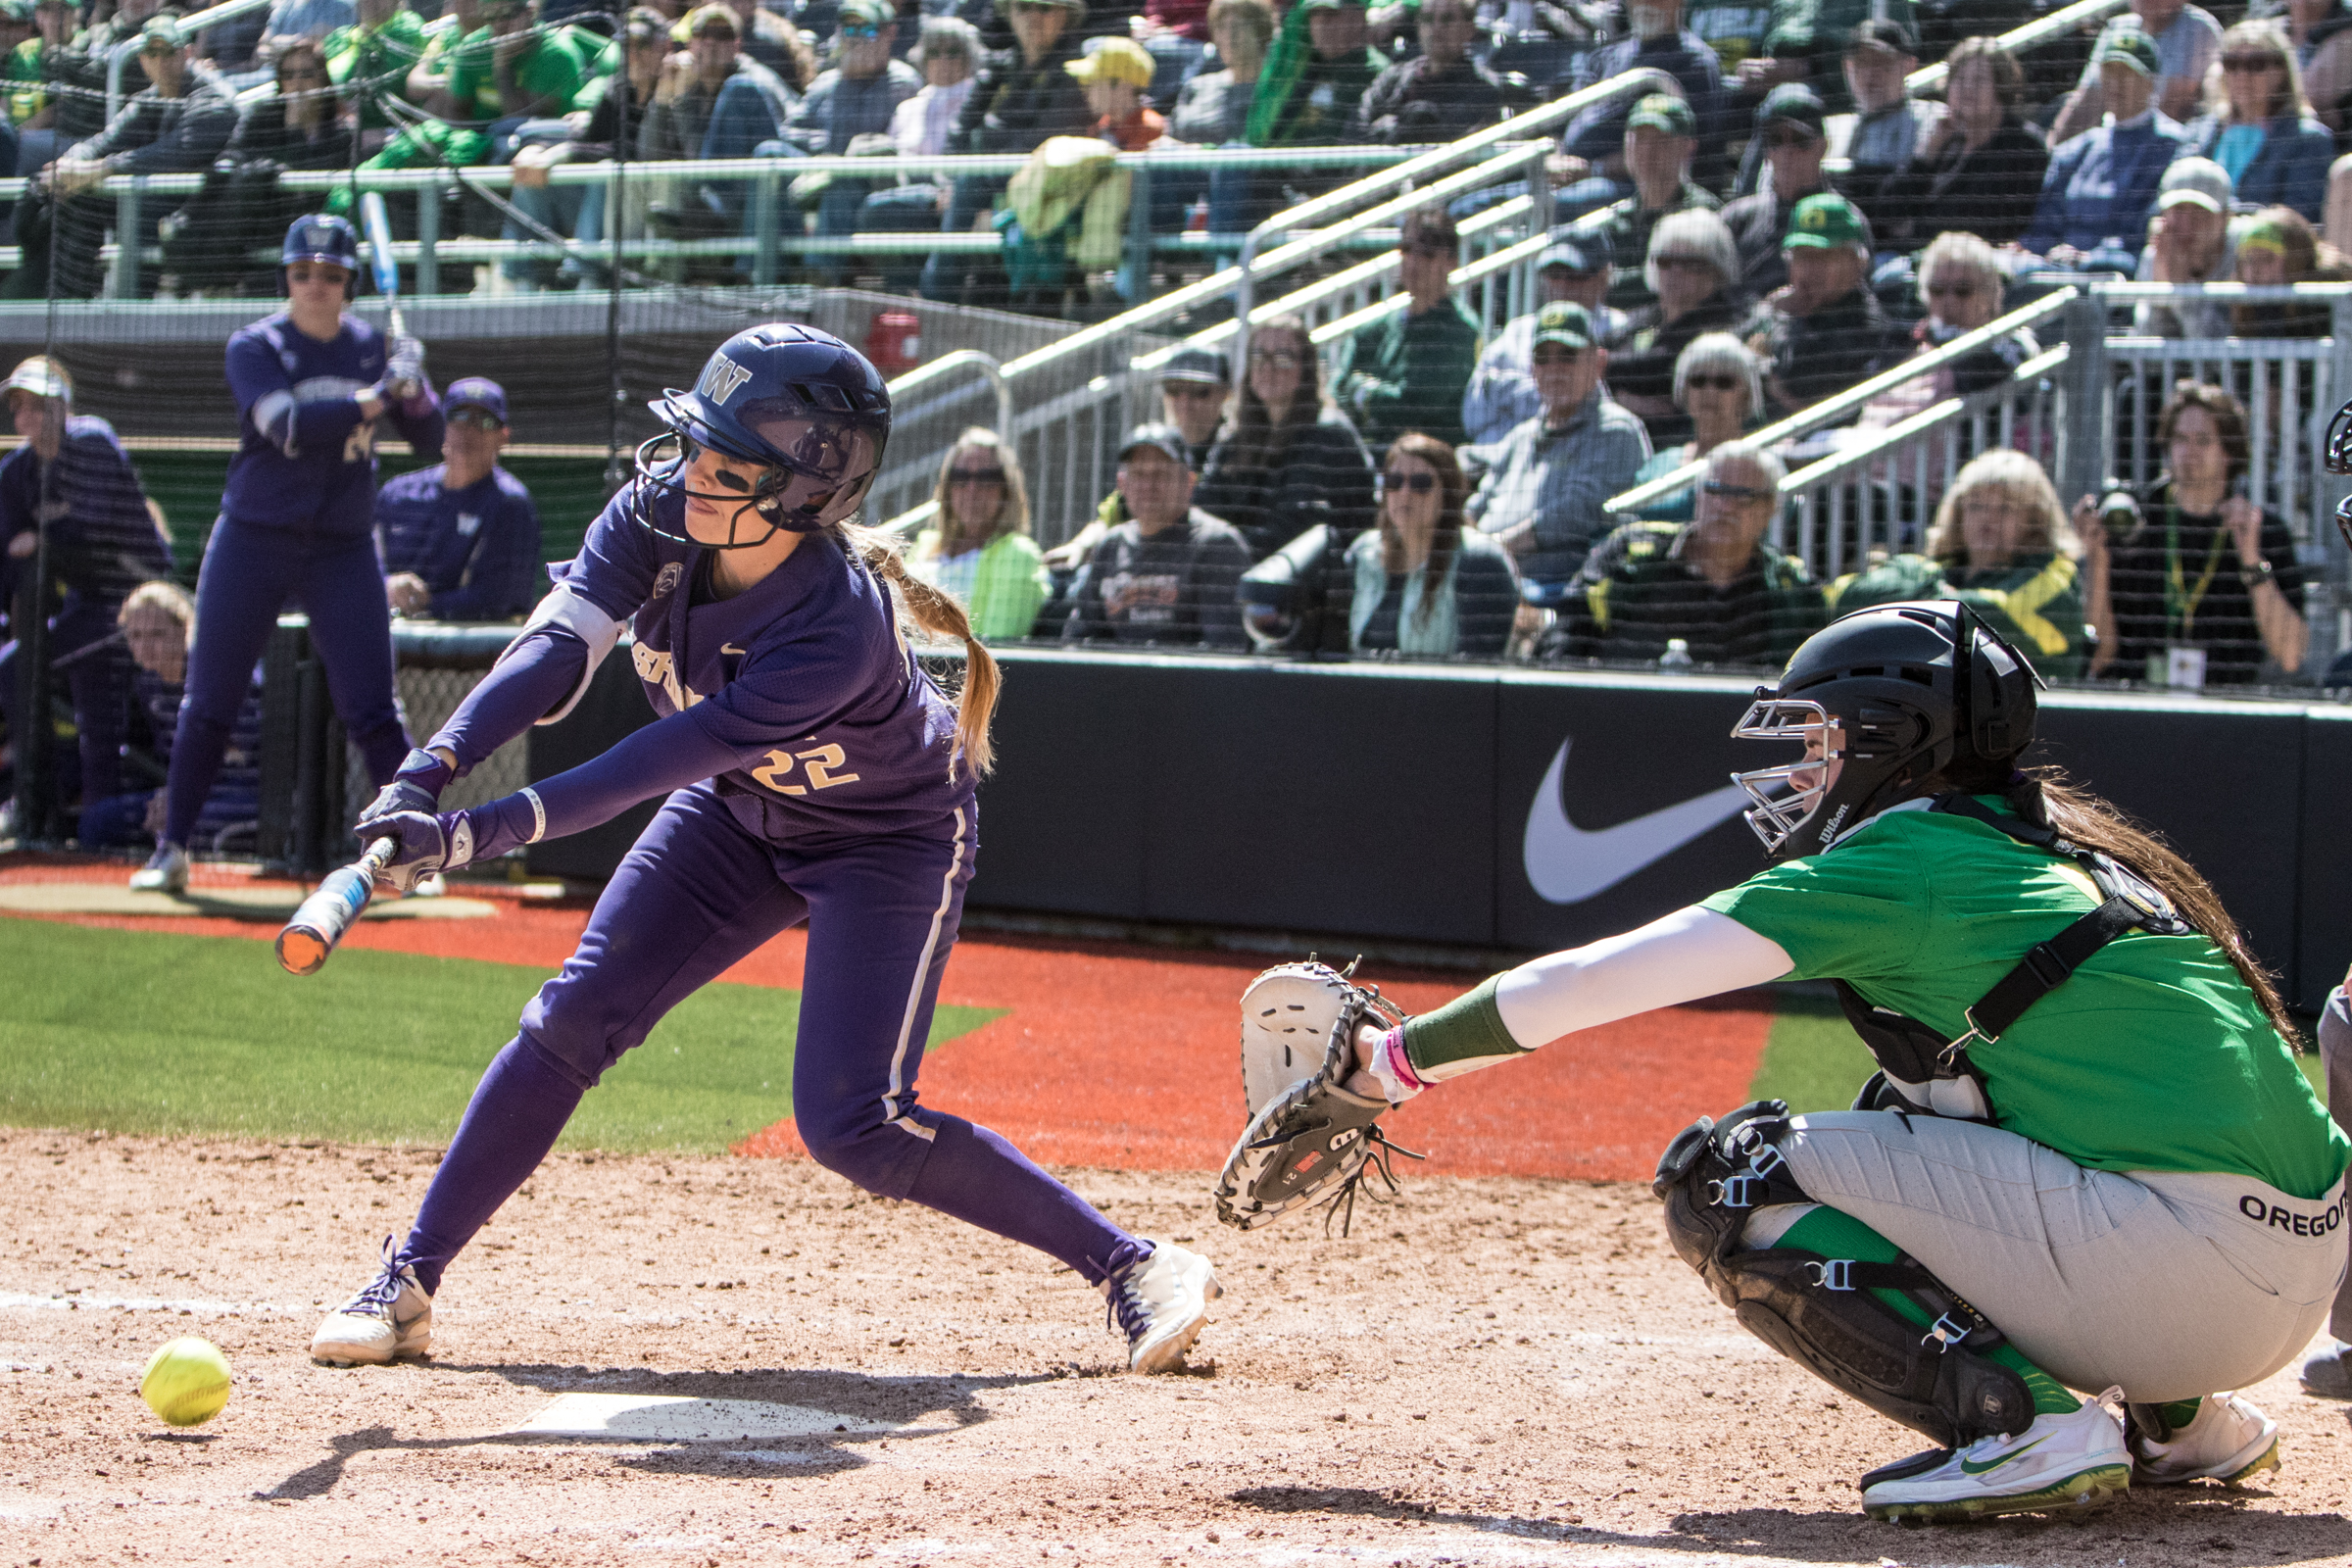 Washington Huskies infielder Sis Bates (#22) hits the ball down and into the ground. In the final game of a three-game series, the University of Washington Huskies defeated the Oregon Ducks 5-3.  The Ducks led through the bottom of the 7th inning, but Washington's Morganne Flores (#47) tied it up with a two-run double.  Flores drove in two more runs in the 9th to take the lead.  Photo by Austin Hicks, Oregon News Lab